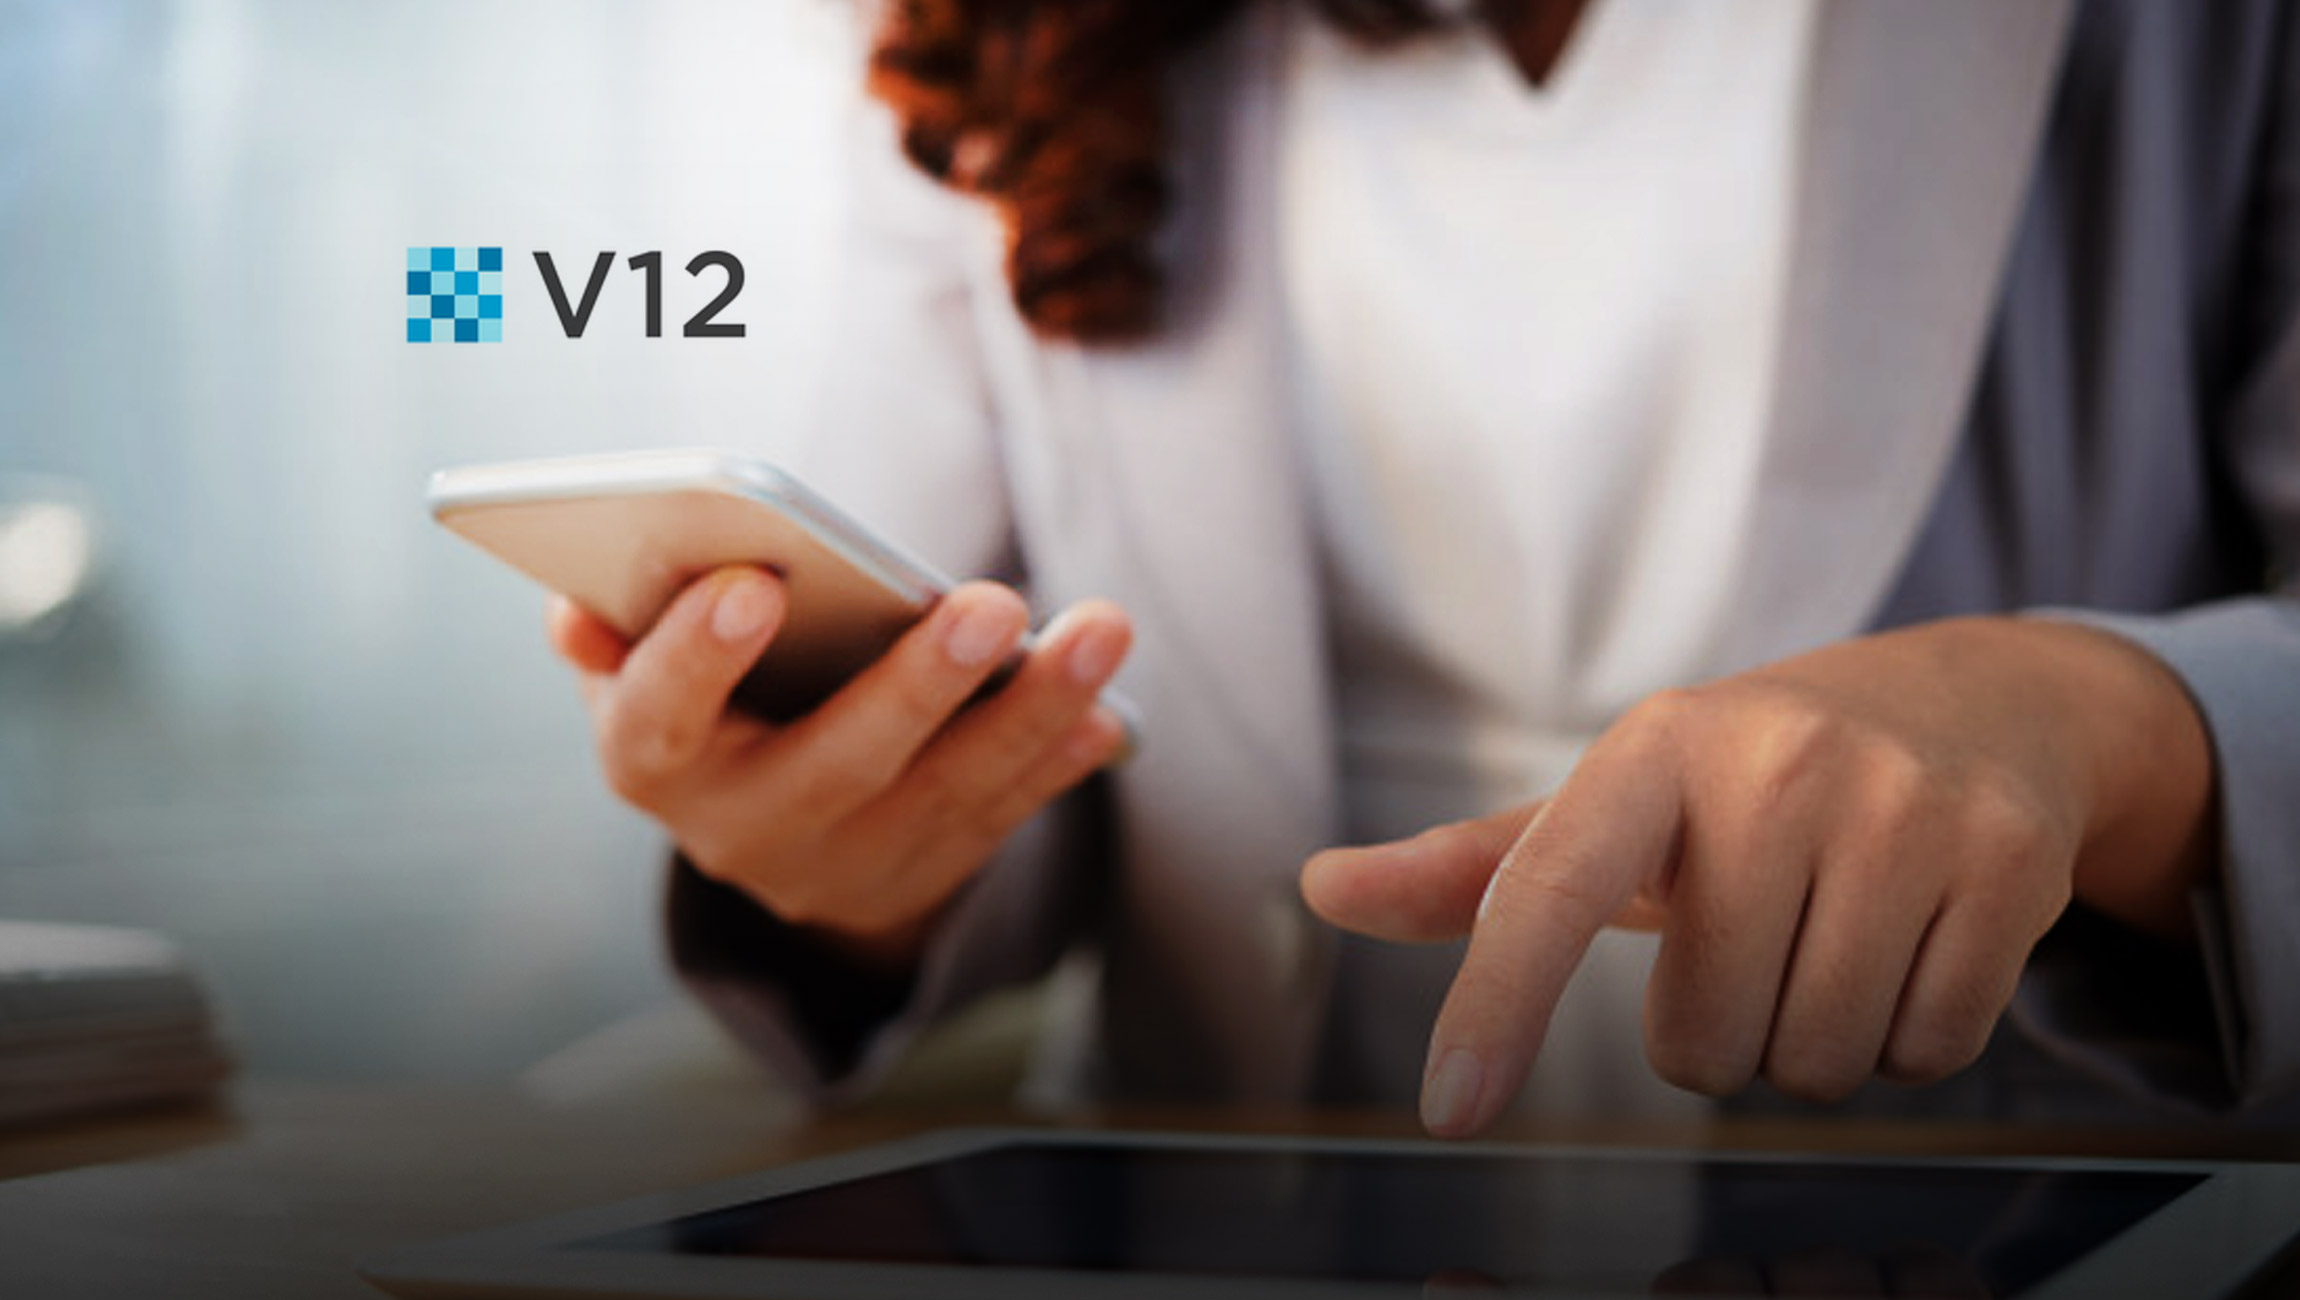 V12 Launches Groundbreaking Solution to Identify In-Market Automotive Shoppers Based on Online Browsing Activity